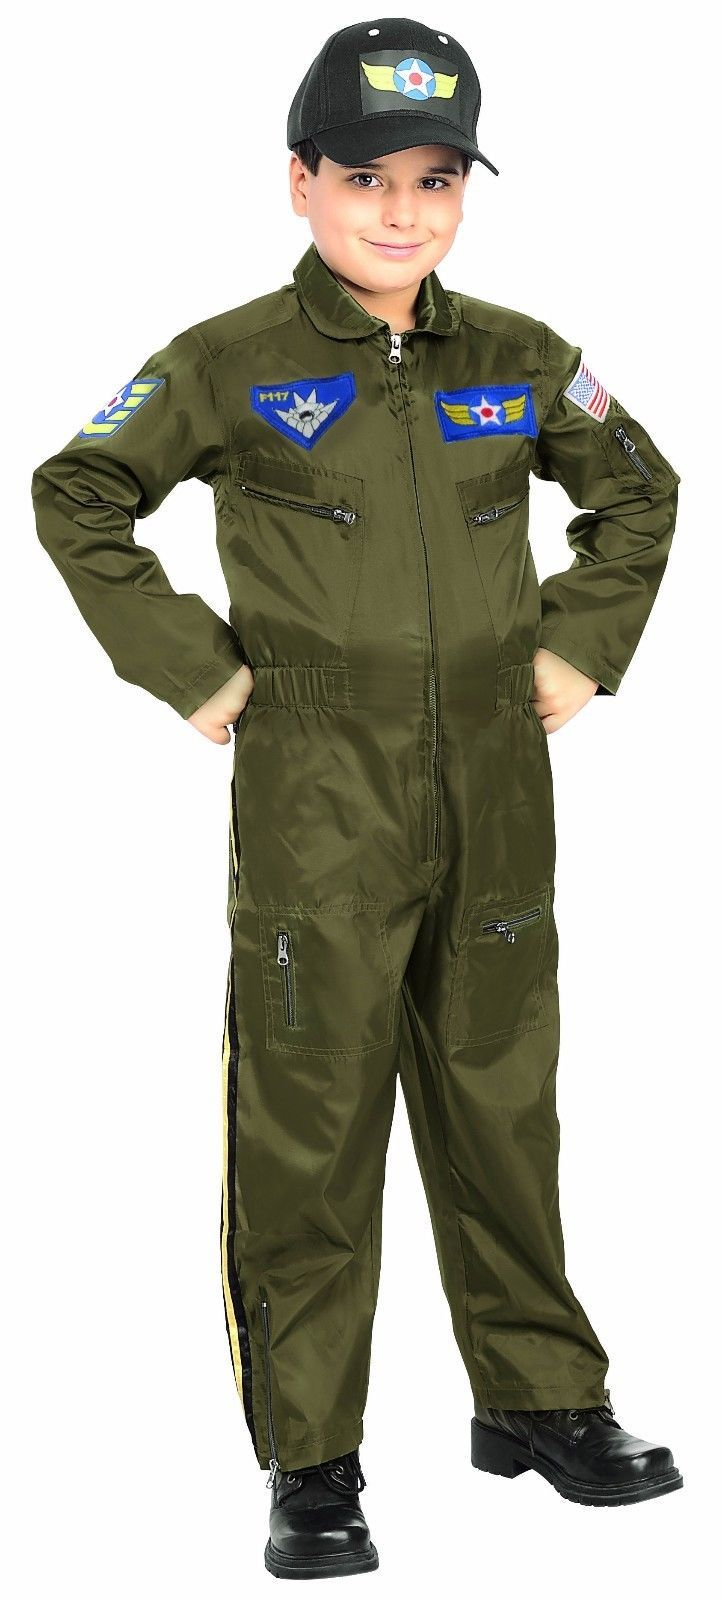 Primary image for Rubies Air Force Fighter Pilot USA Boys Children Halloween Costume 882701